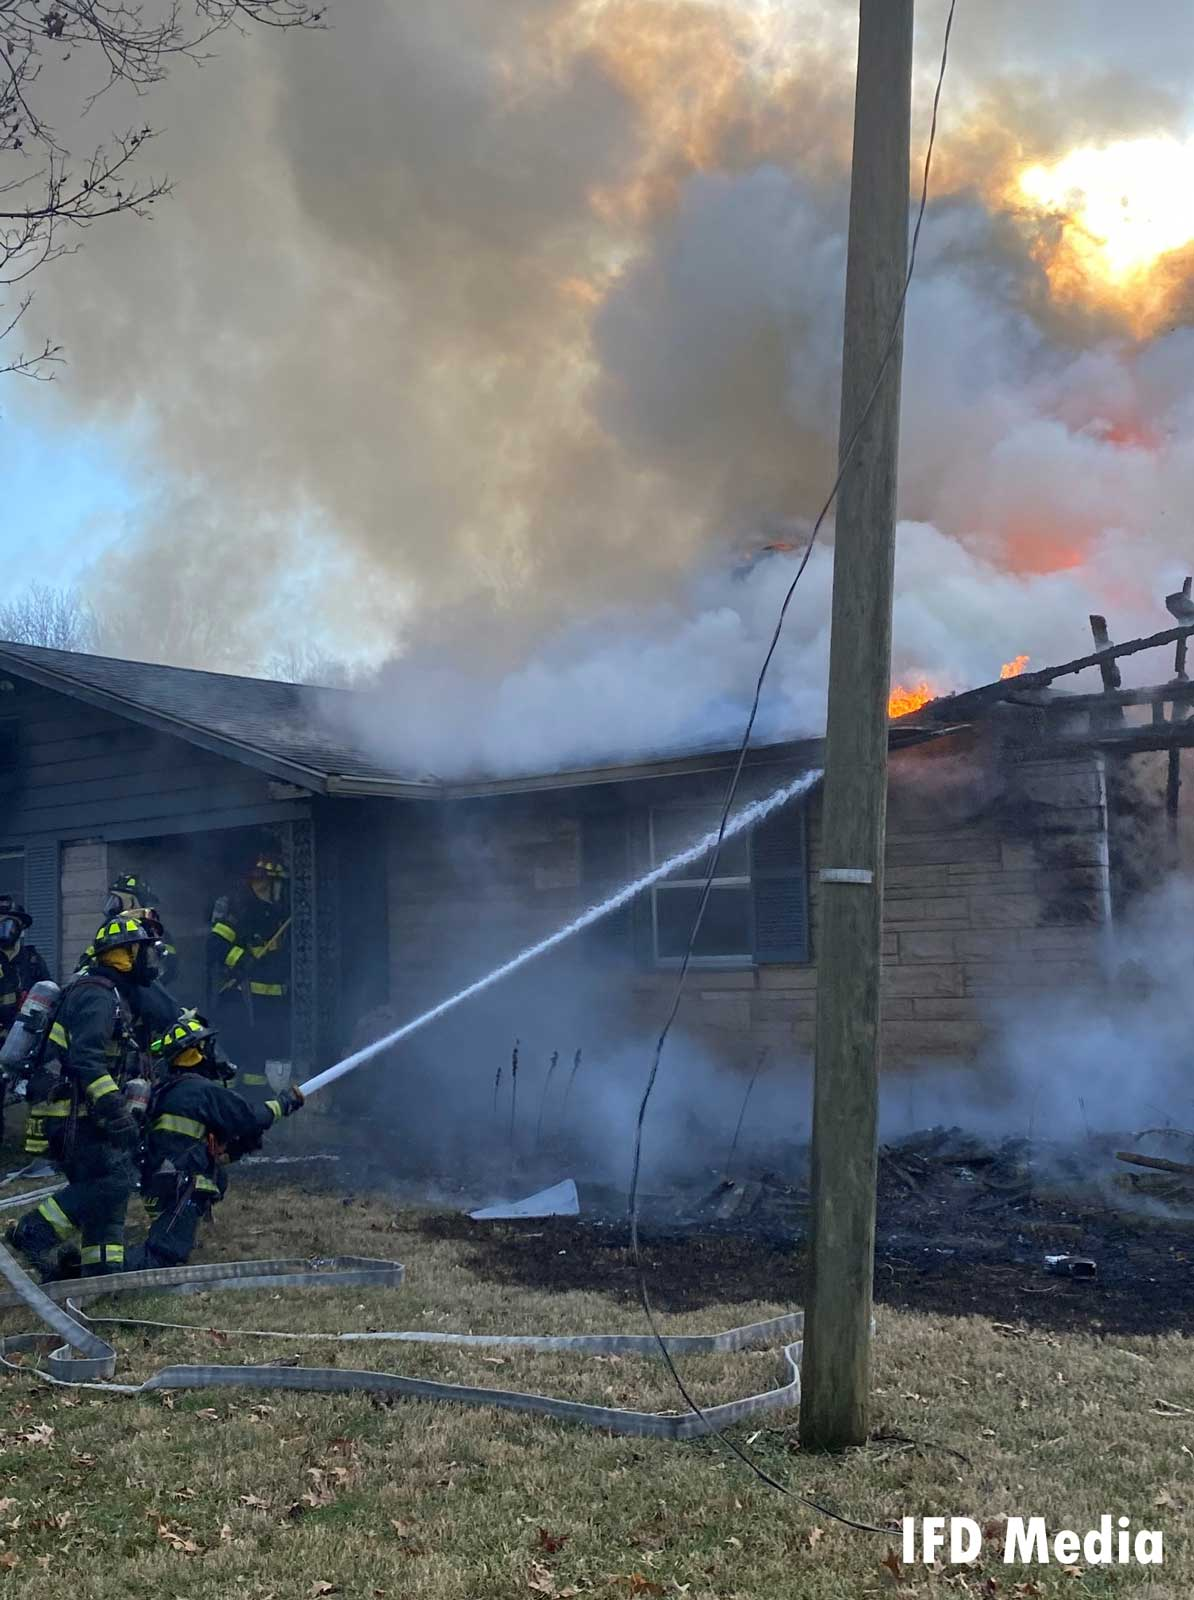 FIrefighters apply a hose stream to the fire from the outside